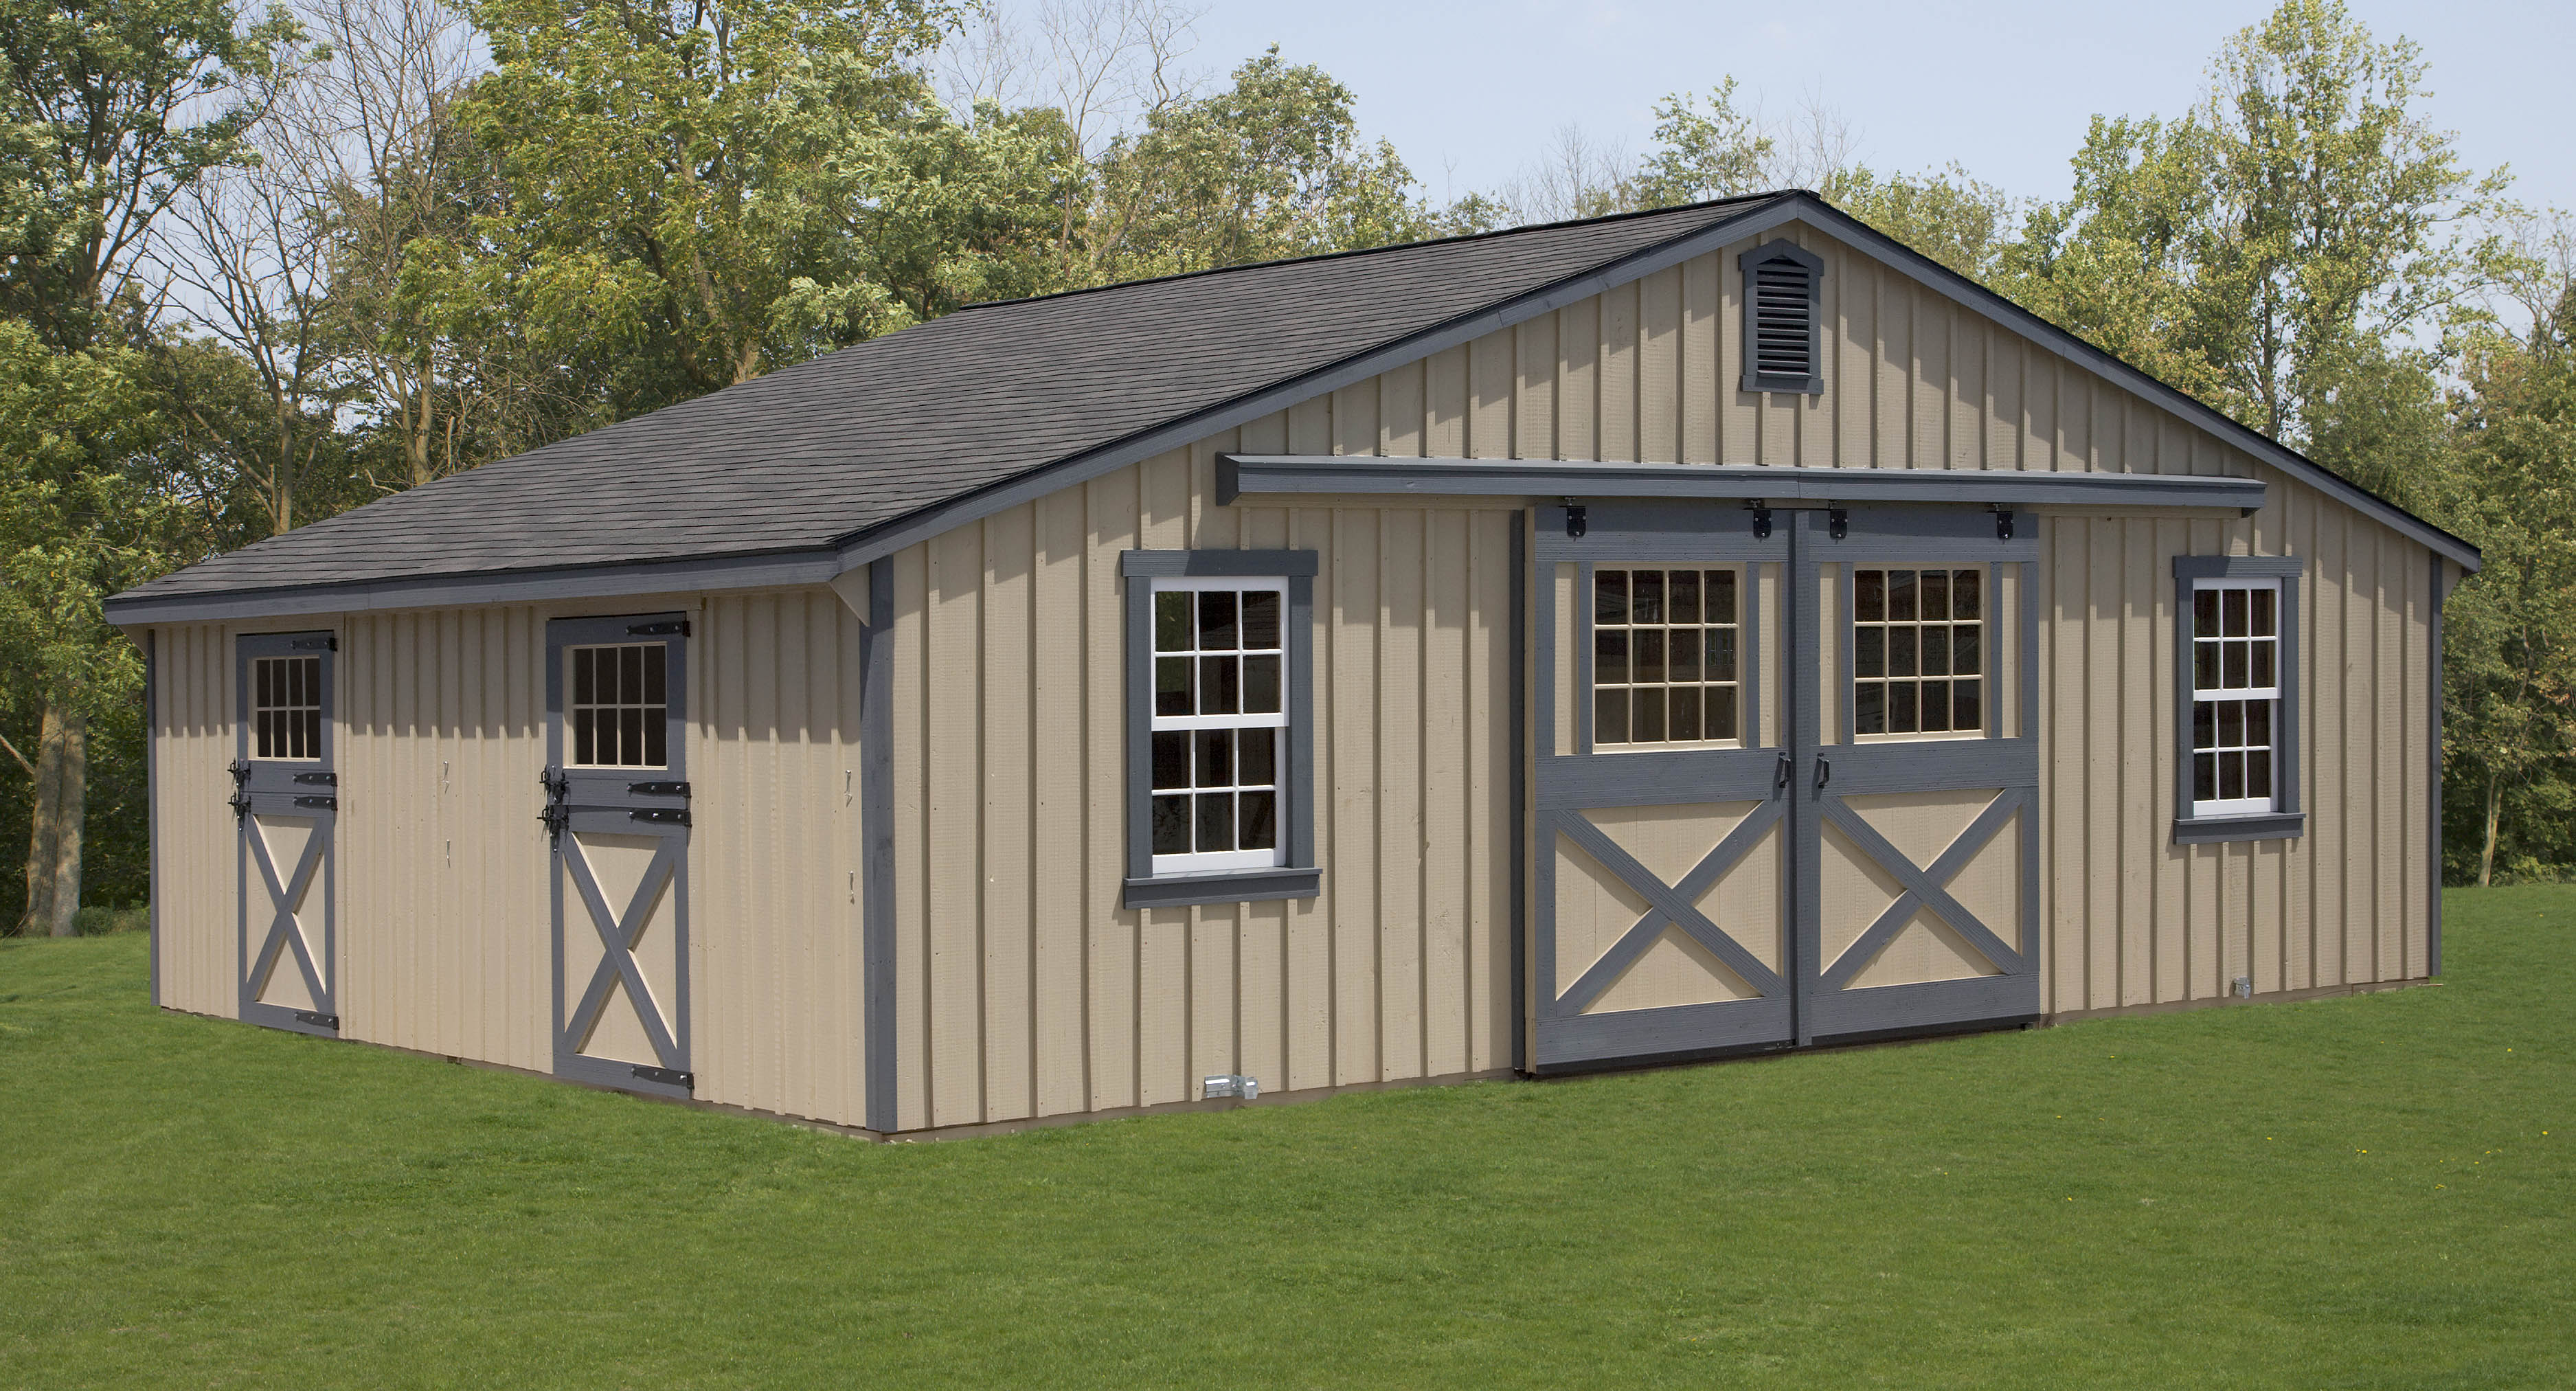 barn amish luxury sheds reference from storage built md of in pa barns lean horse nj run to shed ny